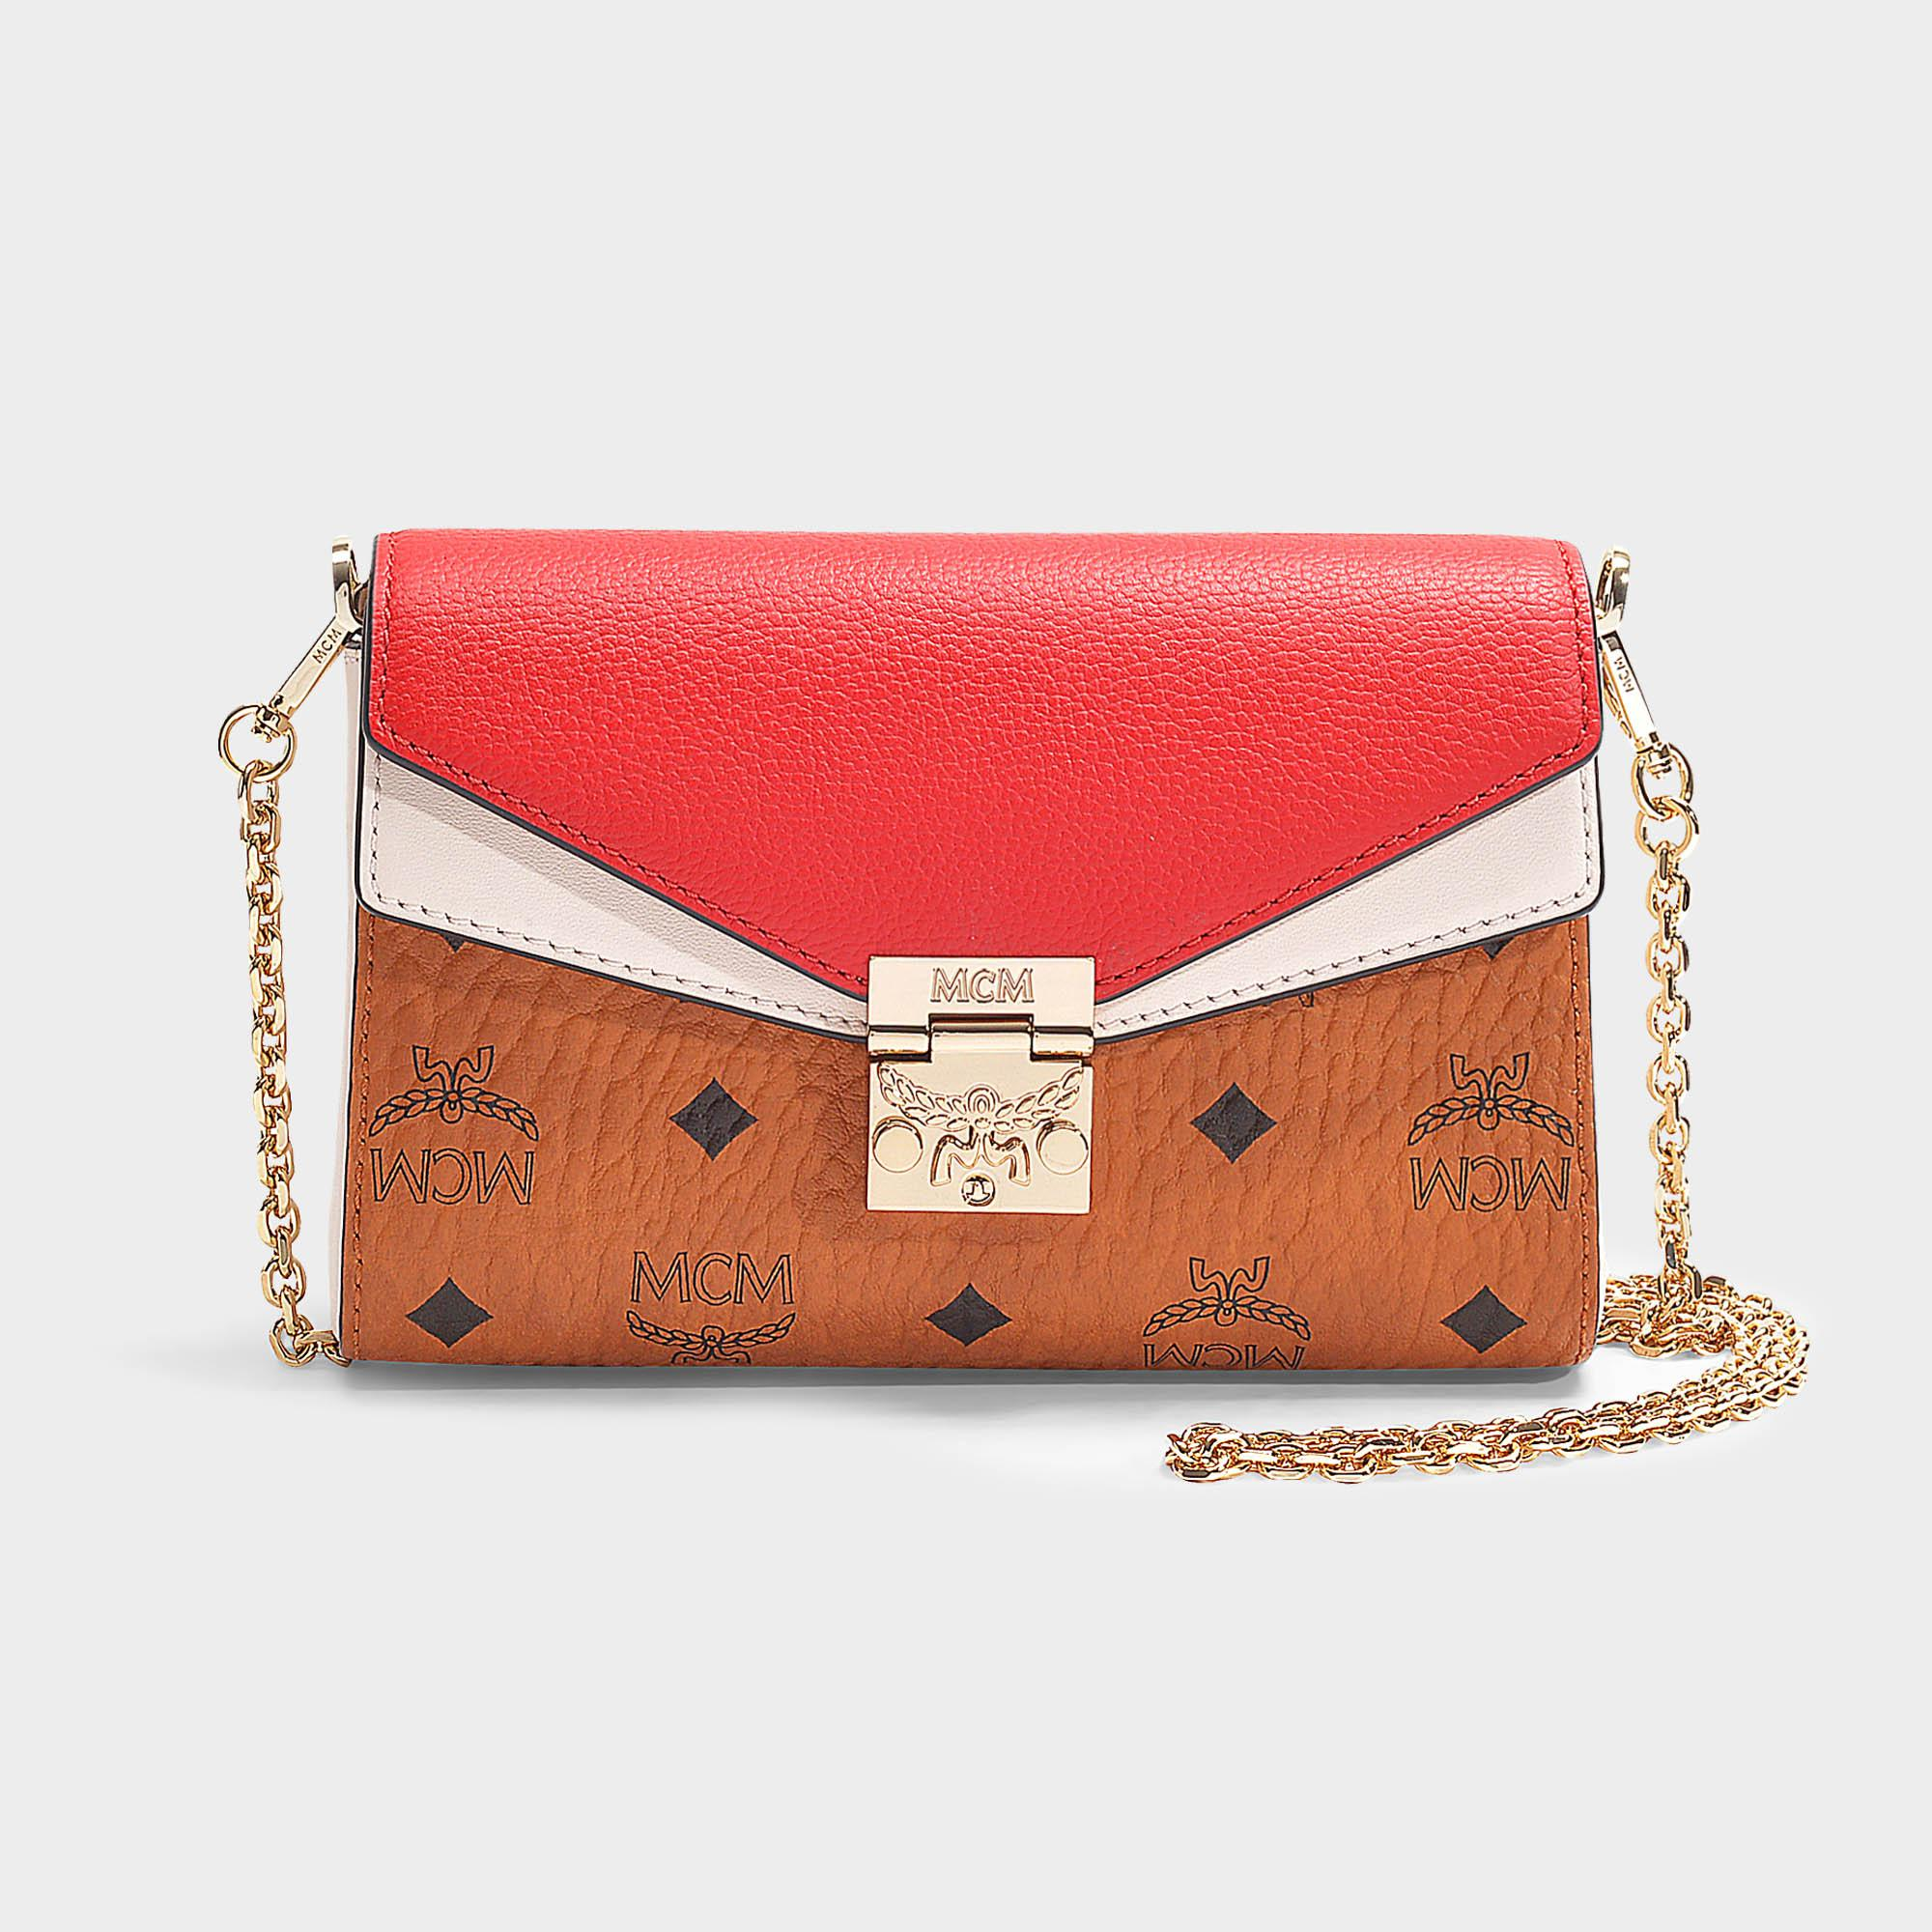 8d6bc47c5d56d MCM - Millie Visetos Leather Block Small Crossbody Bag In Cognac And Red  Coated Canvas -. View fullscreen